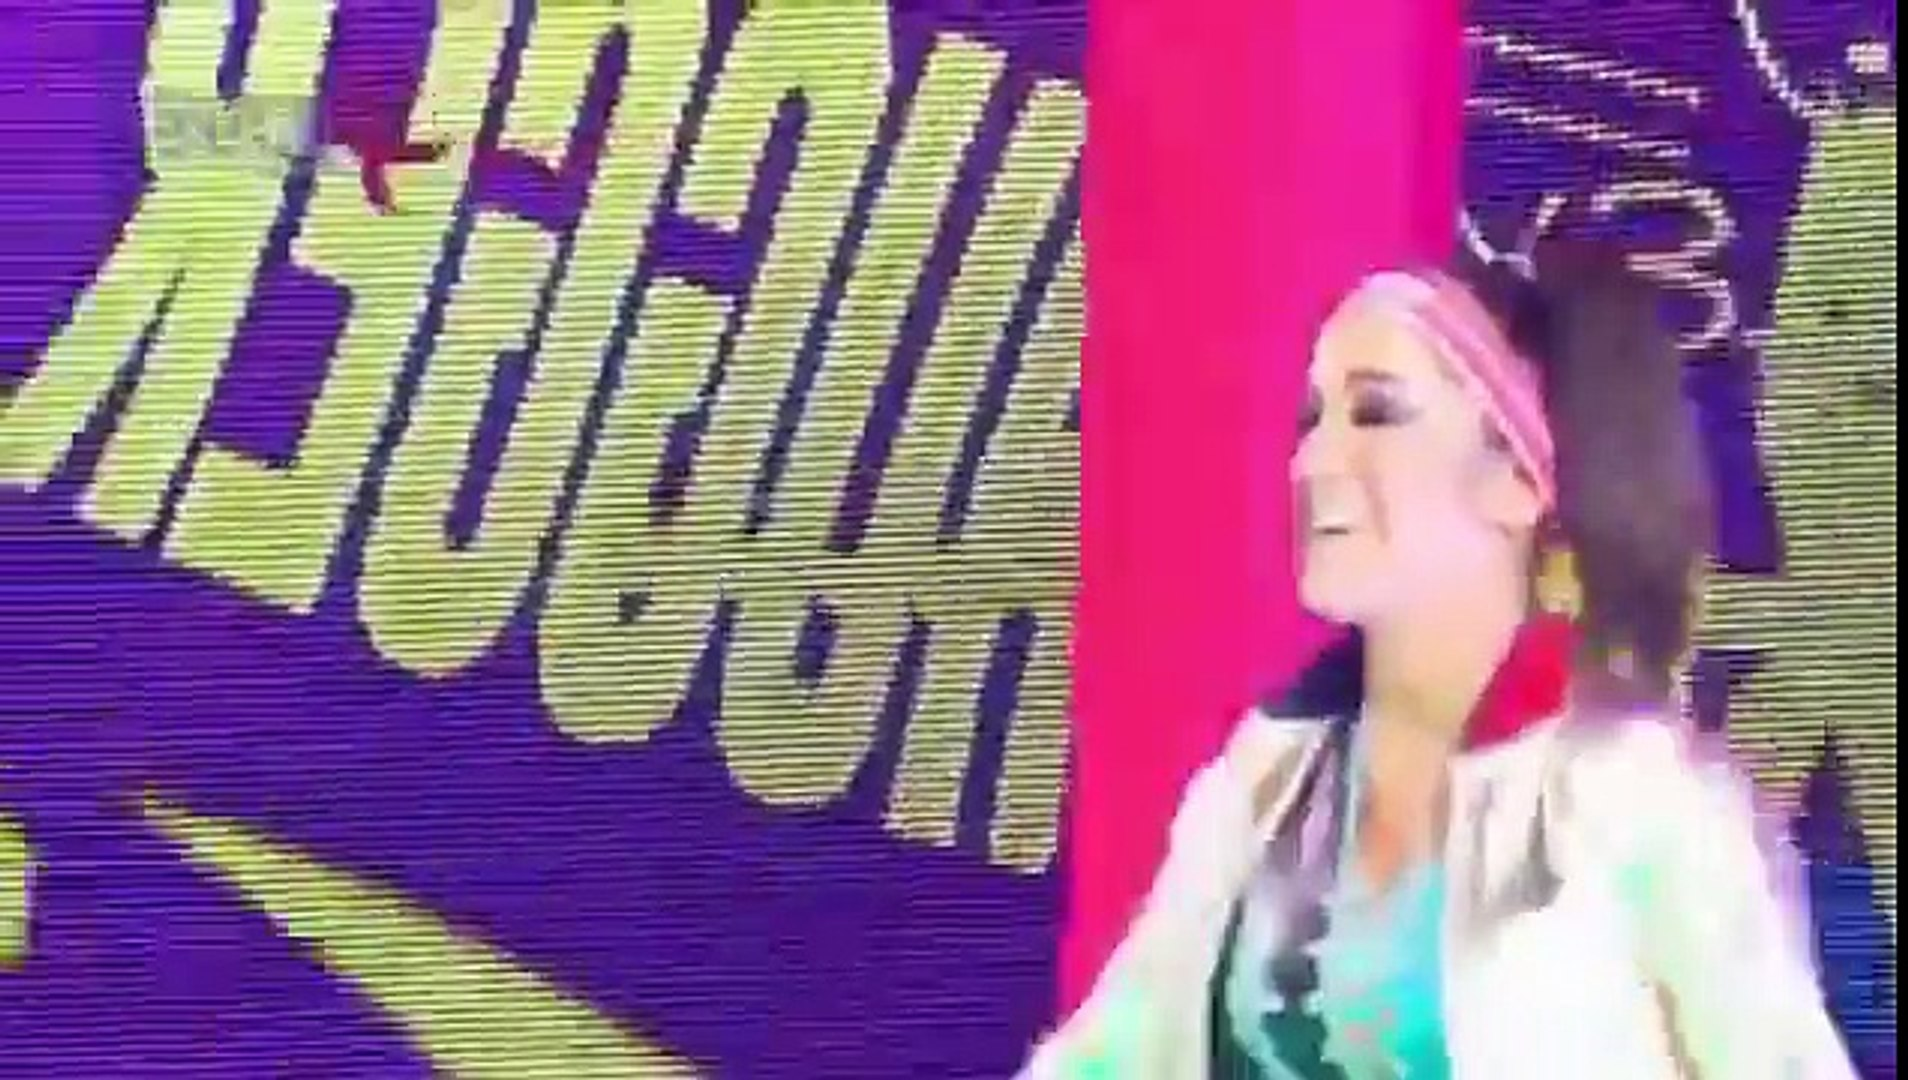 Bayley vs Dana Brooke Full Match - WWE Hell in a Cell 30 October 2016 Full Show HD